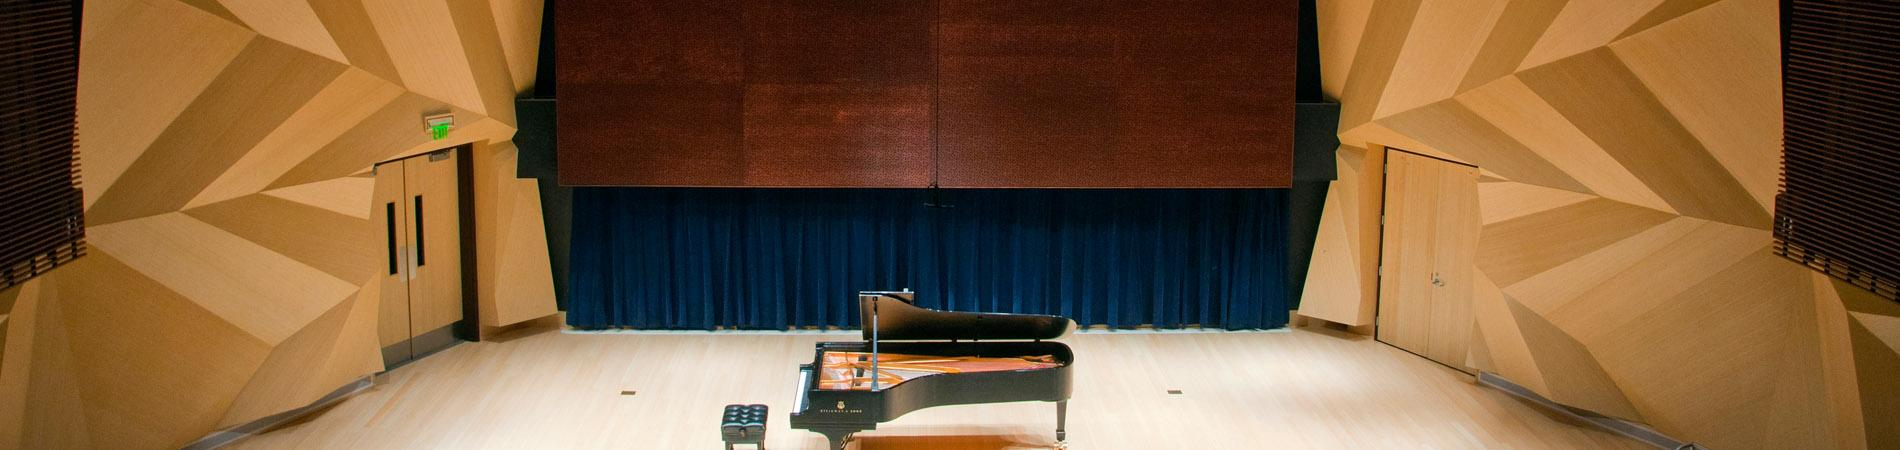 Bower School of Music & the Arts Concerts